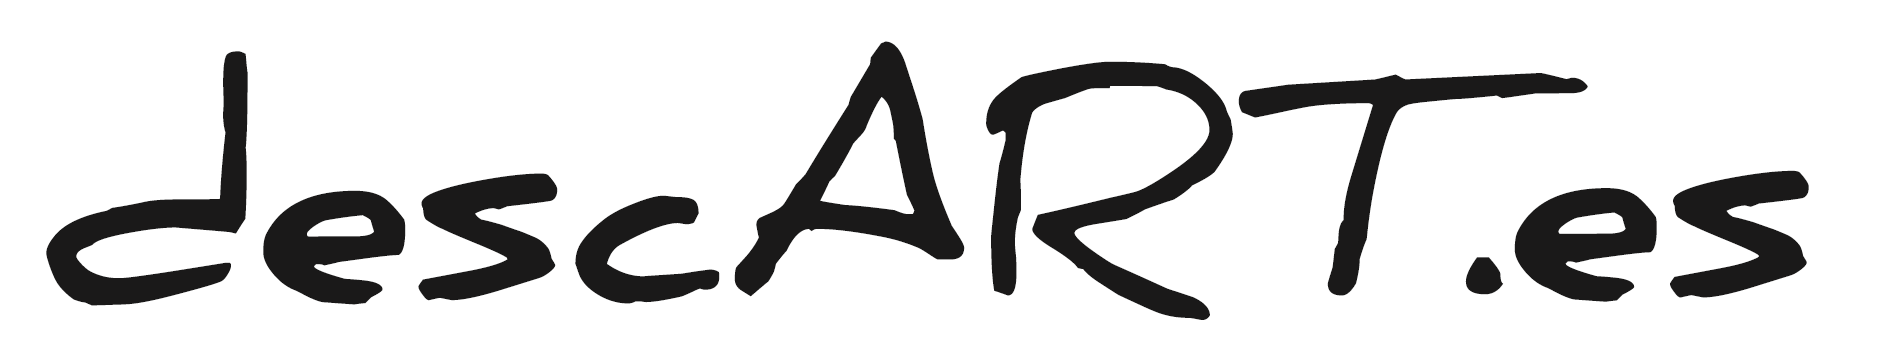 descartes-LOGO.png